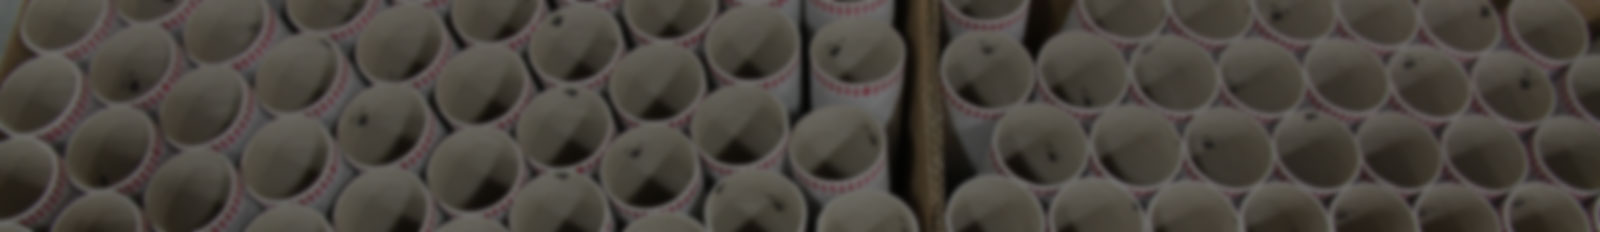 Tubes-in-boxes-slice.jpg